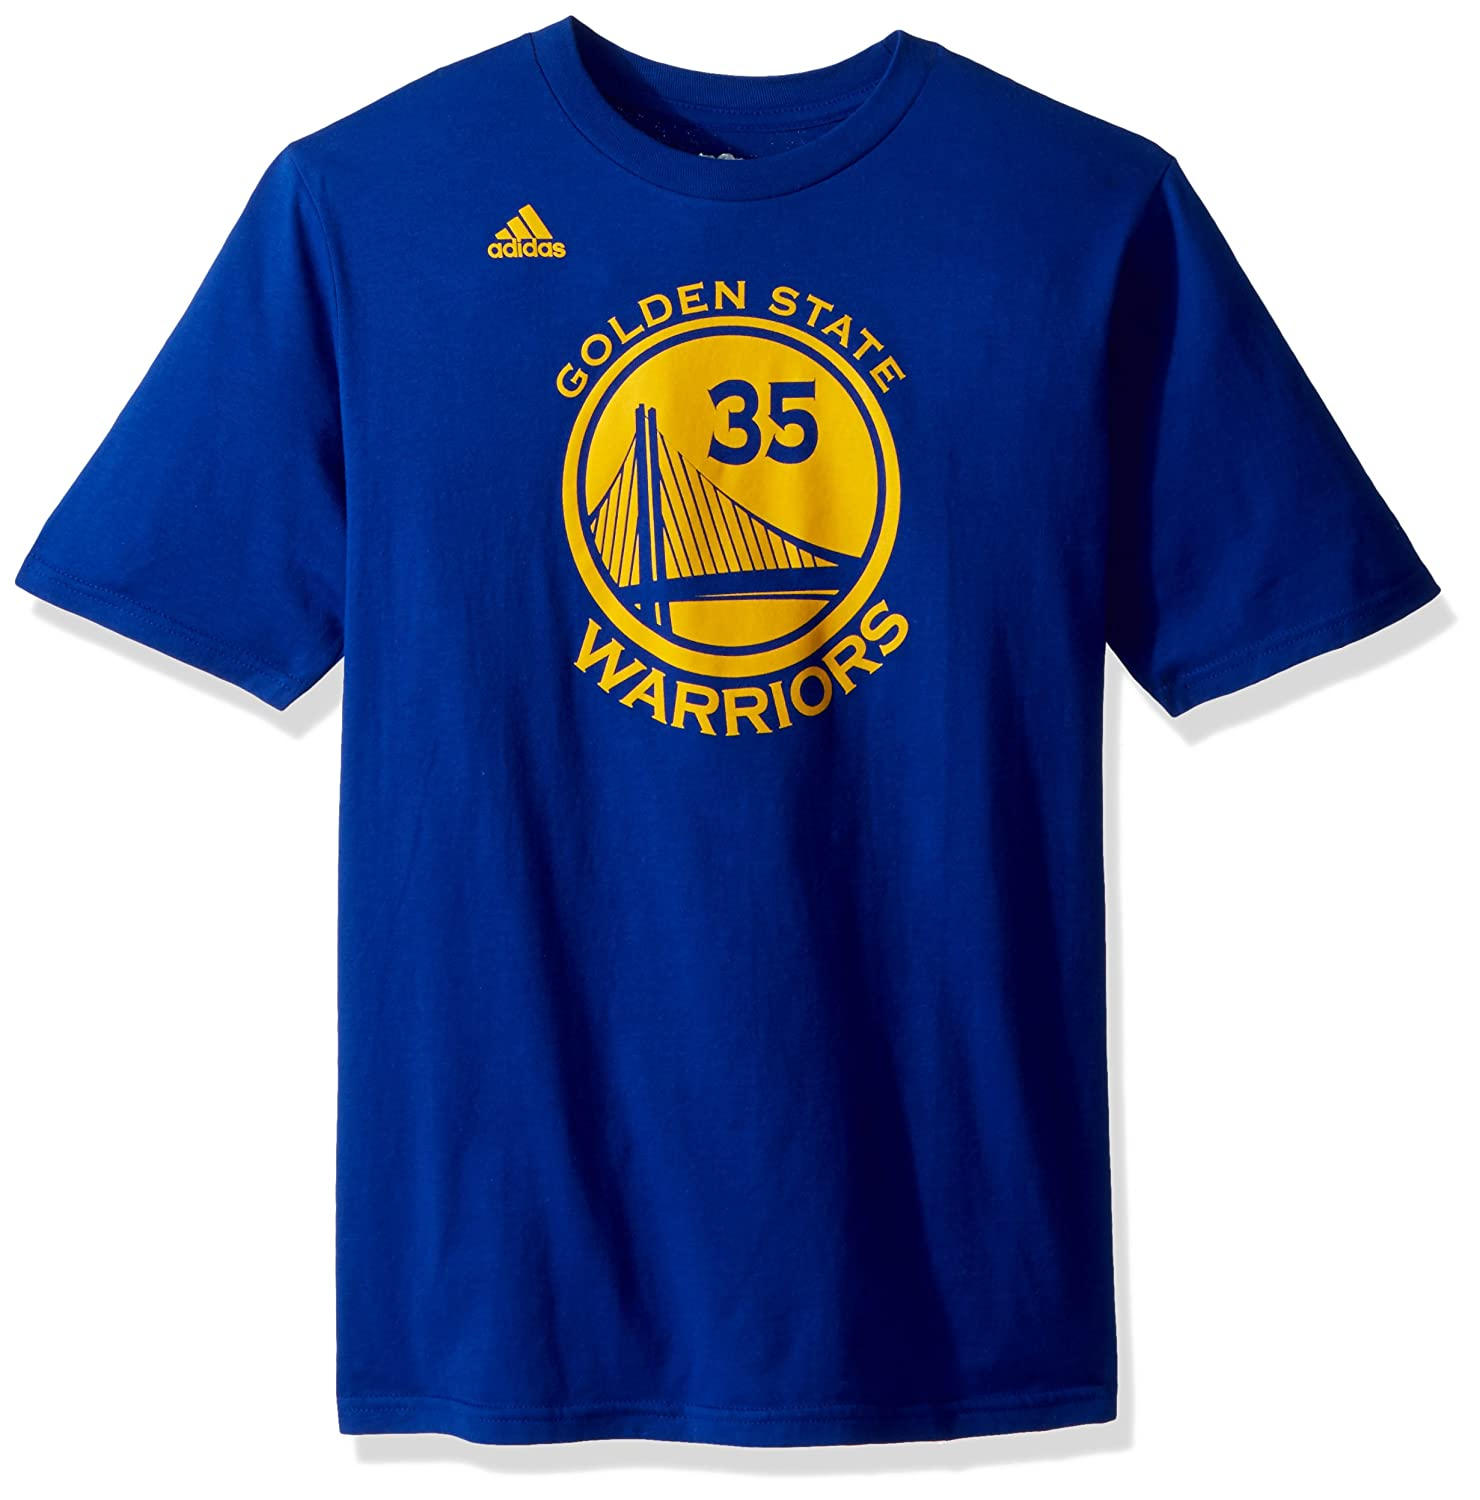 79f5b94b93844 adidas Golden State Warriors Youth Kevin Durant Gametime Name/Number  T-Shirt - Royal #35,